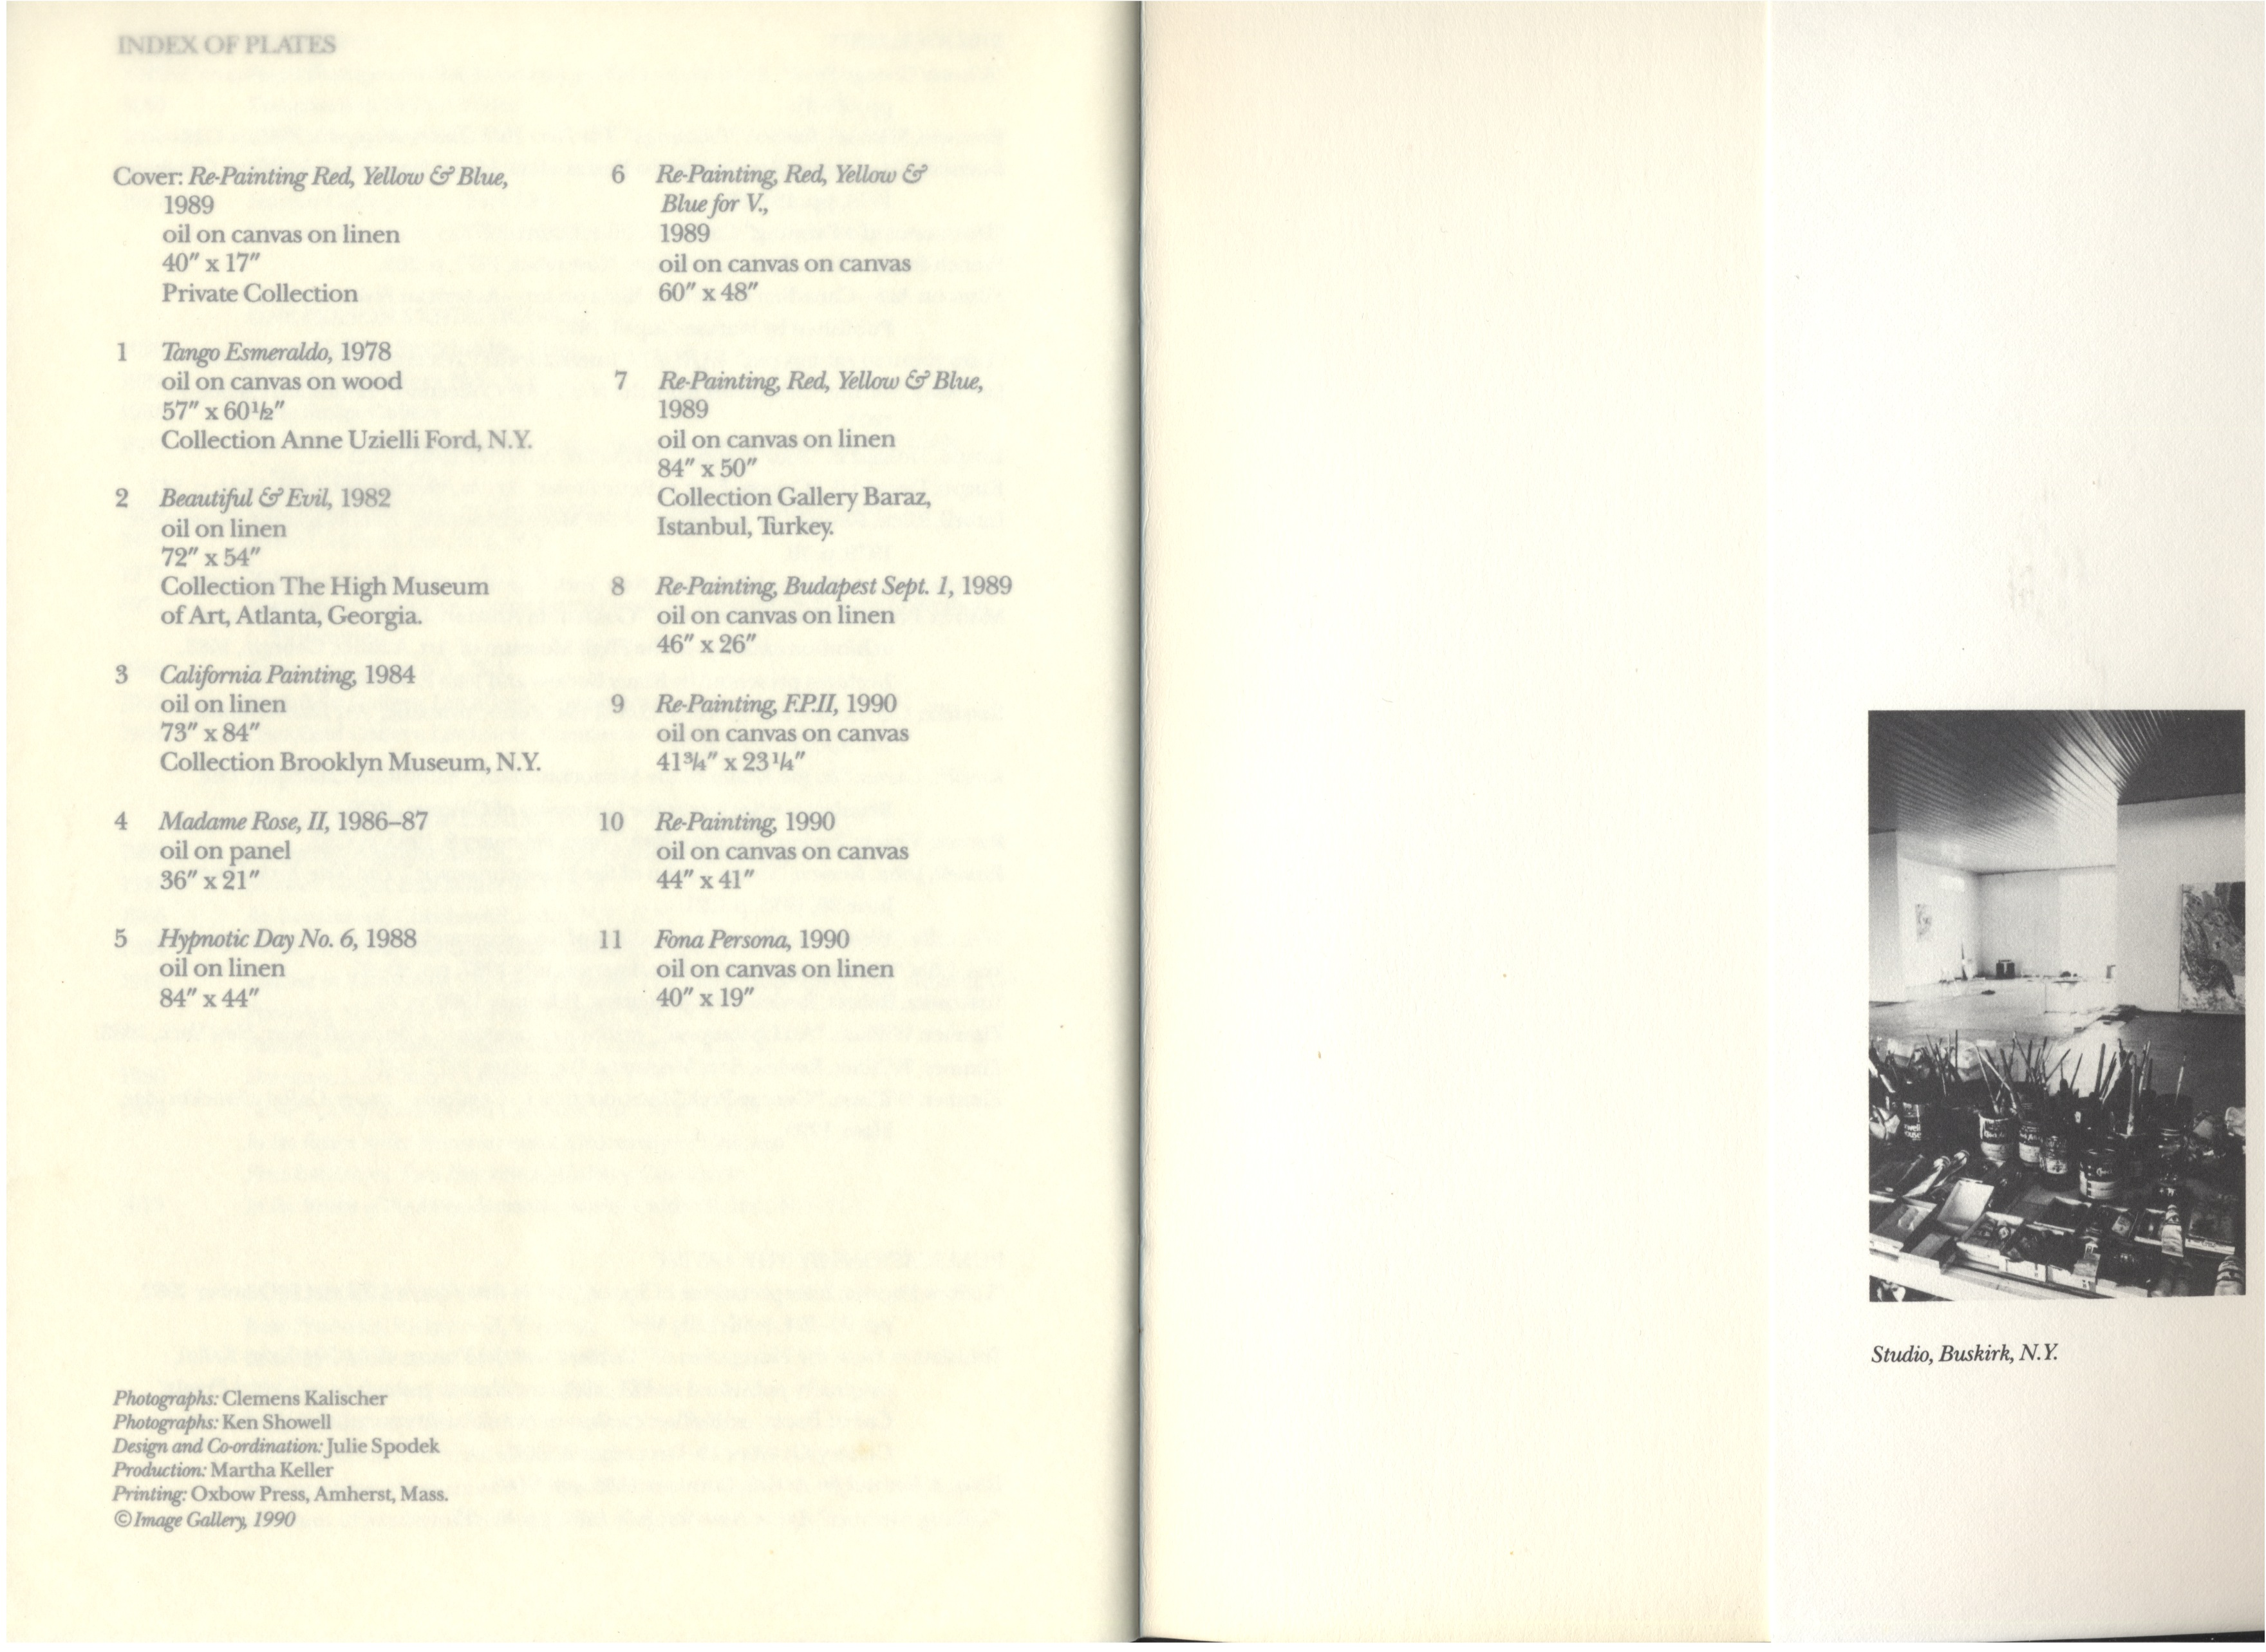 Image Gallery catalogue 10